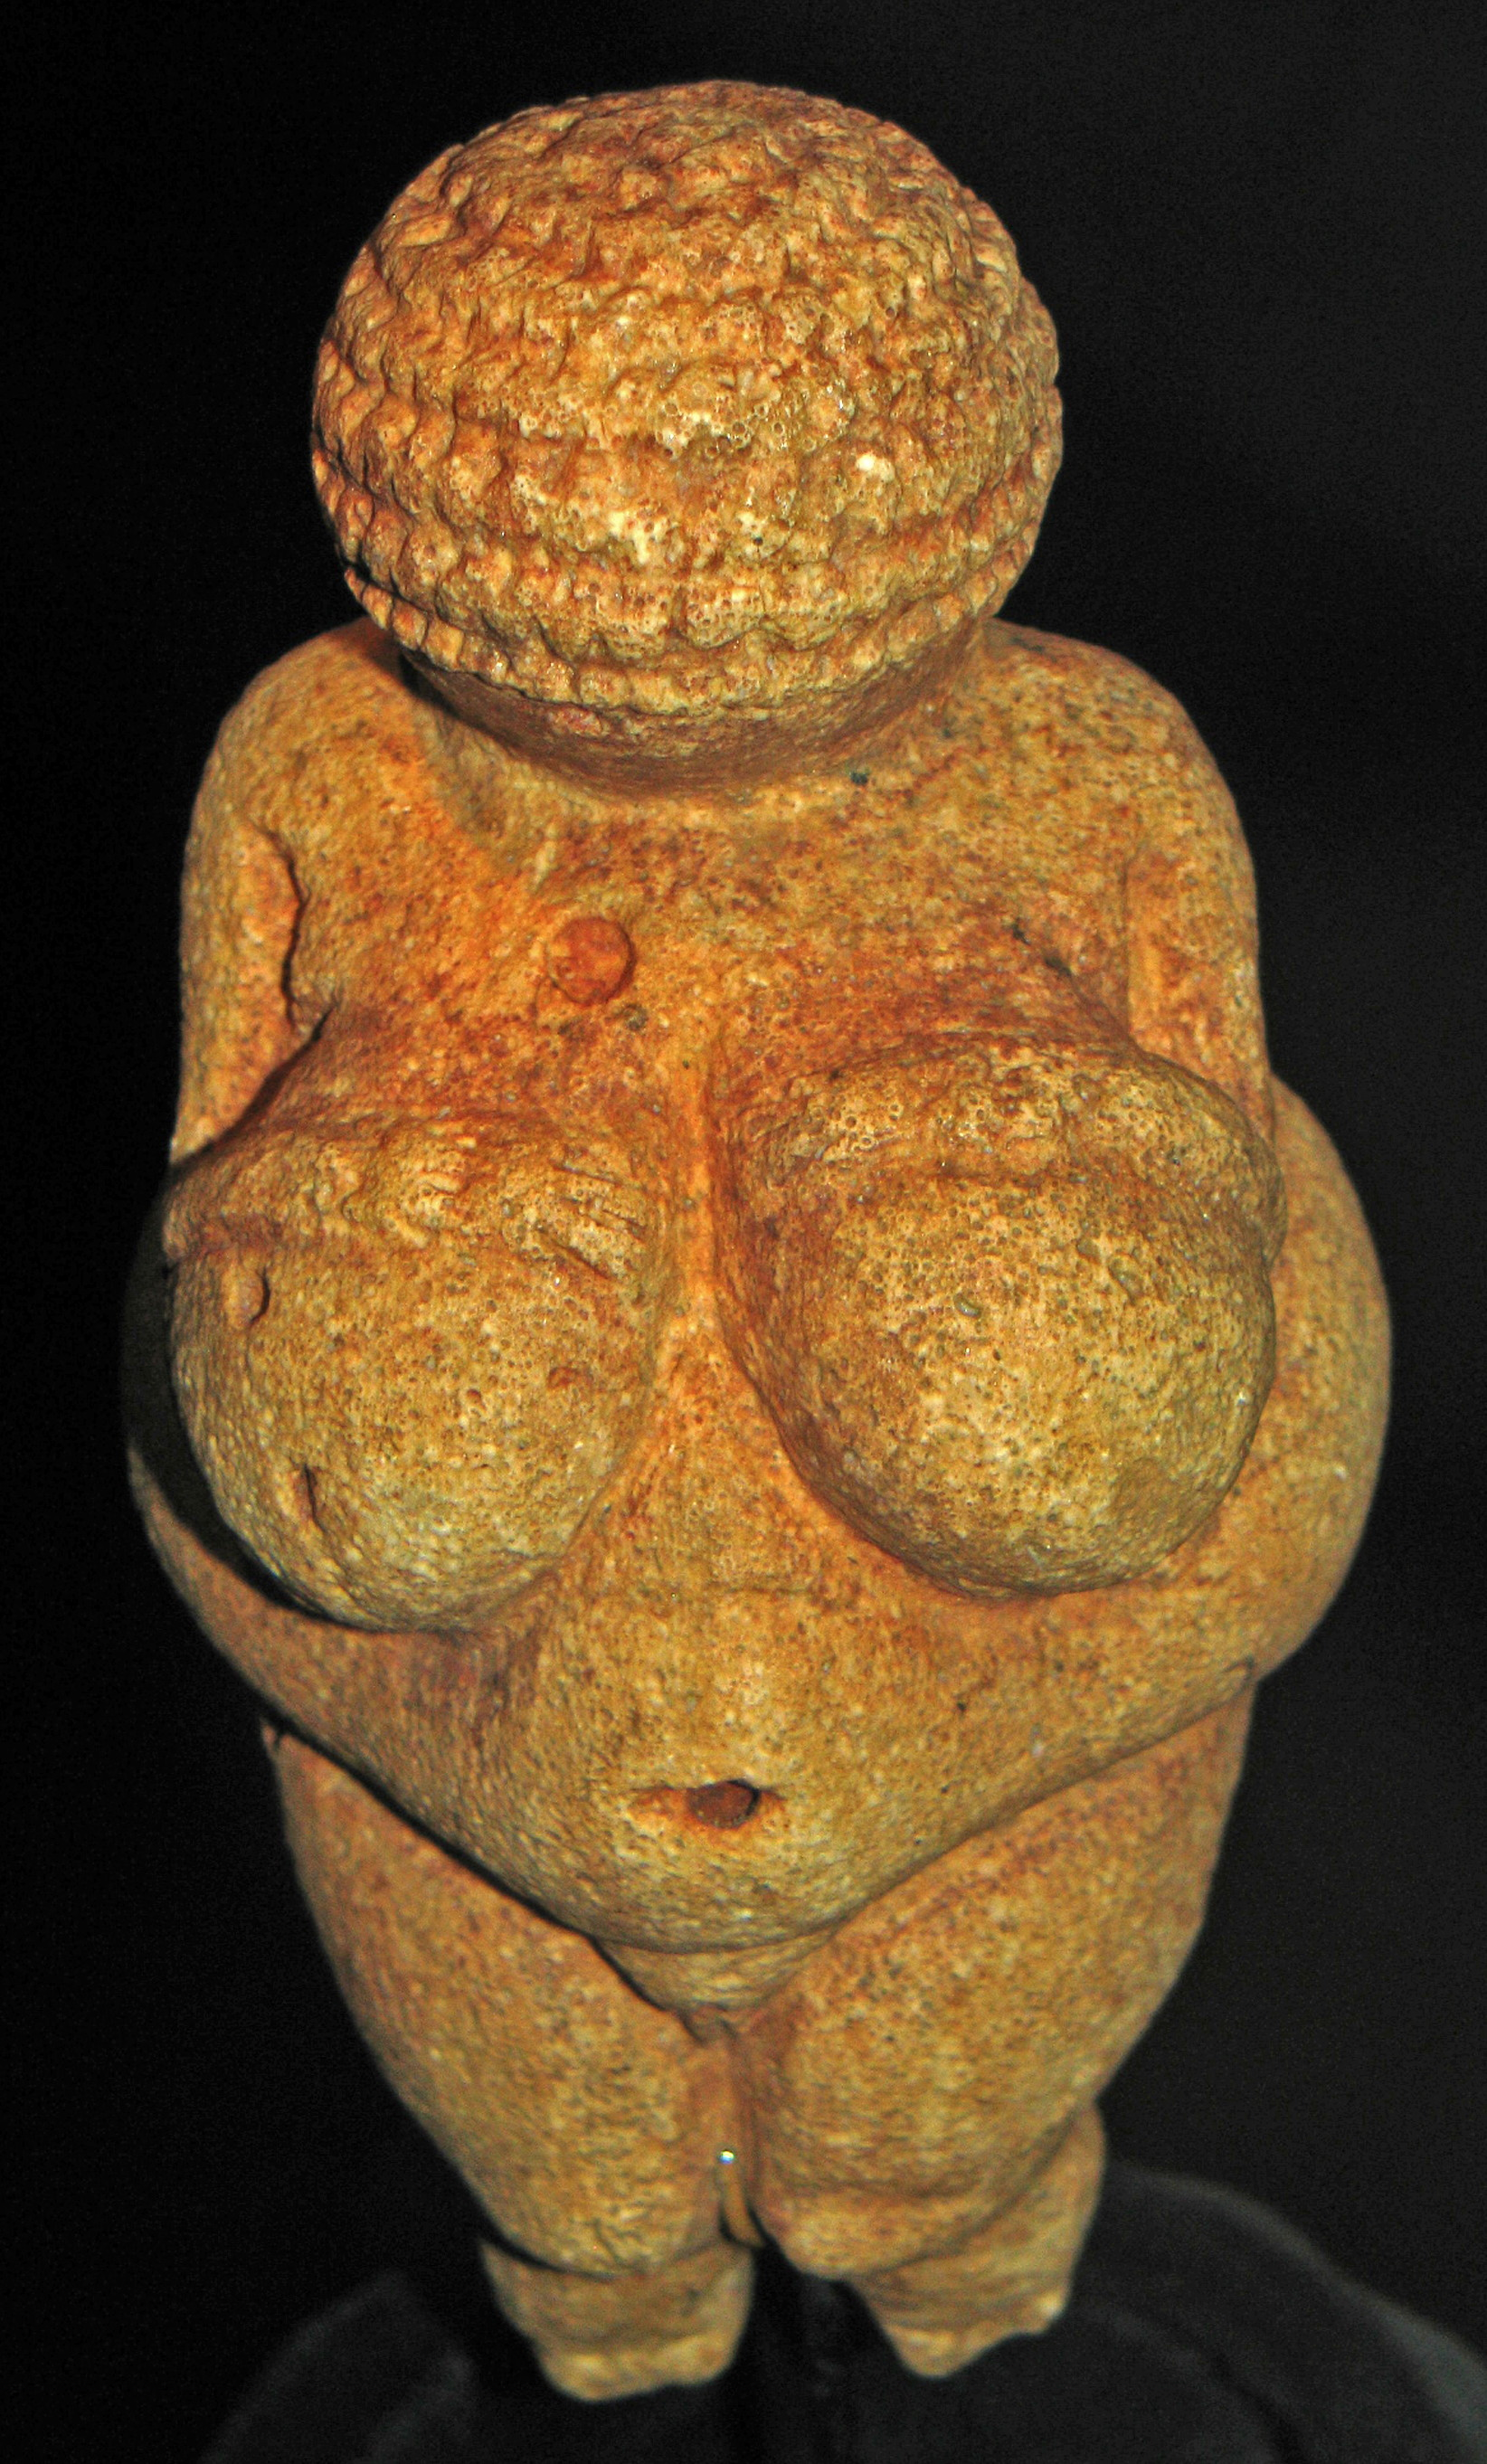 venus of willendorf the image of Buy venus of willendorf prehistoric mother goddess statue replica 475 inch figurine: collectible figurines - amazoncom free delivery possible on eligible purchases.